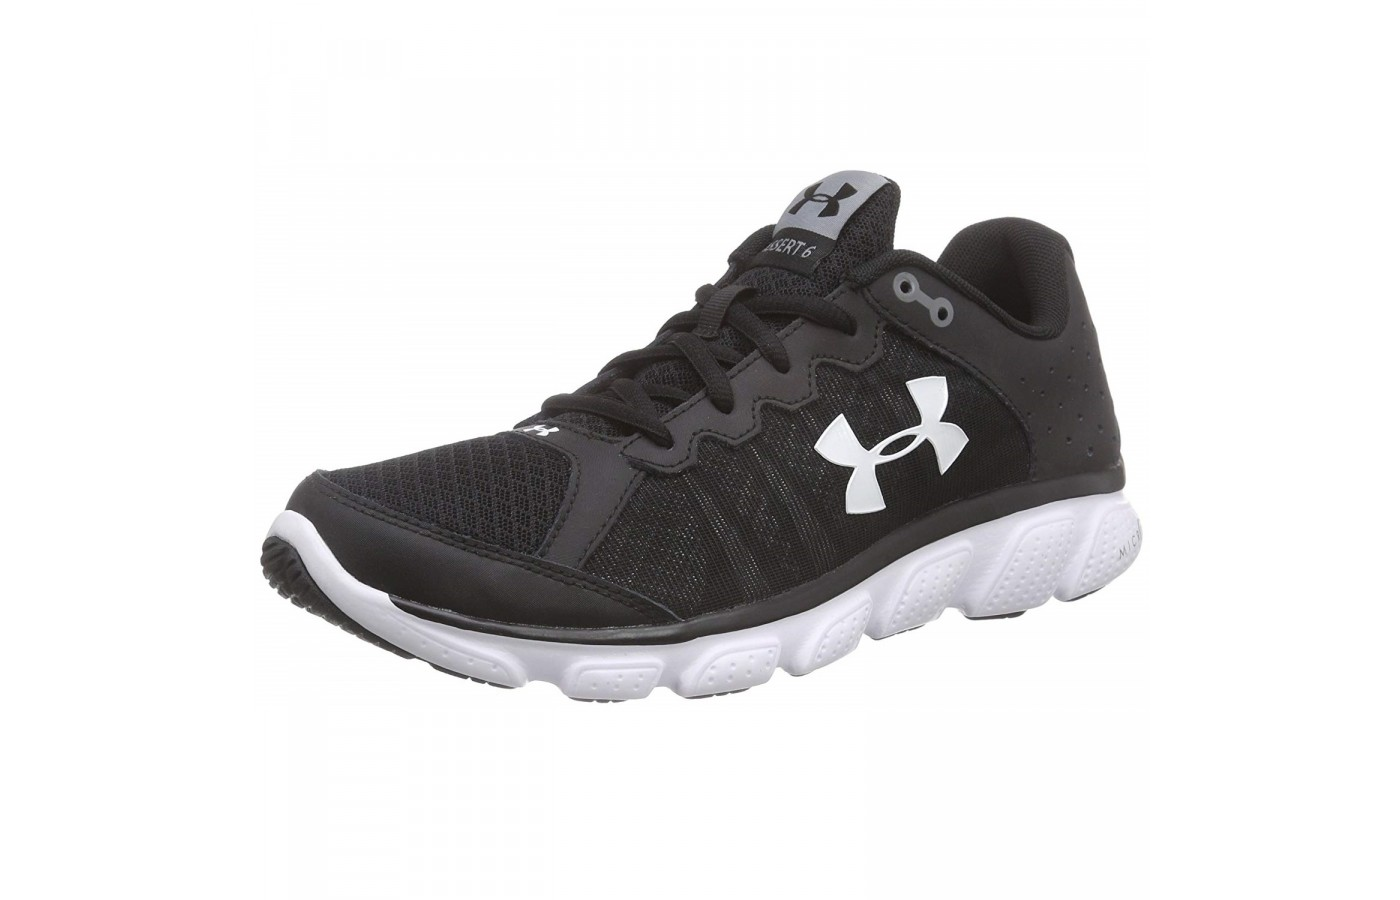 The Under Armour Micro G Assert 6 offers a lightweight outsole for less drag when competing.